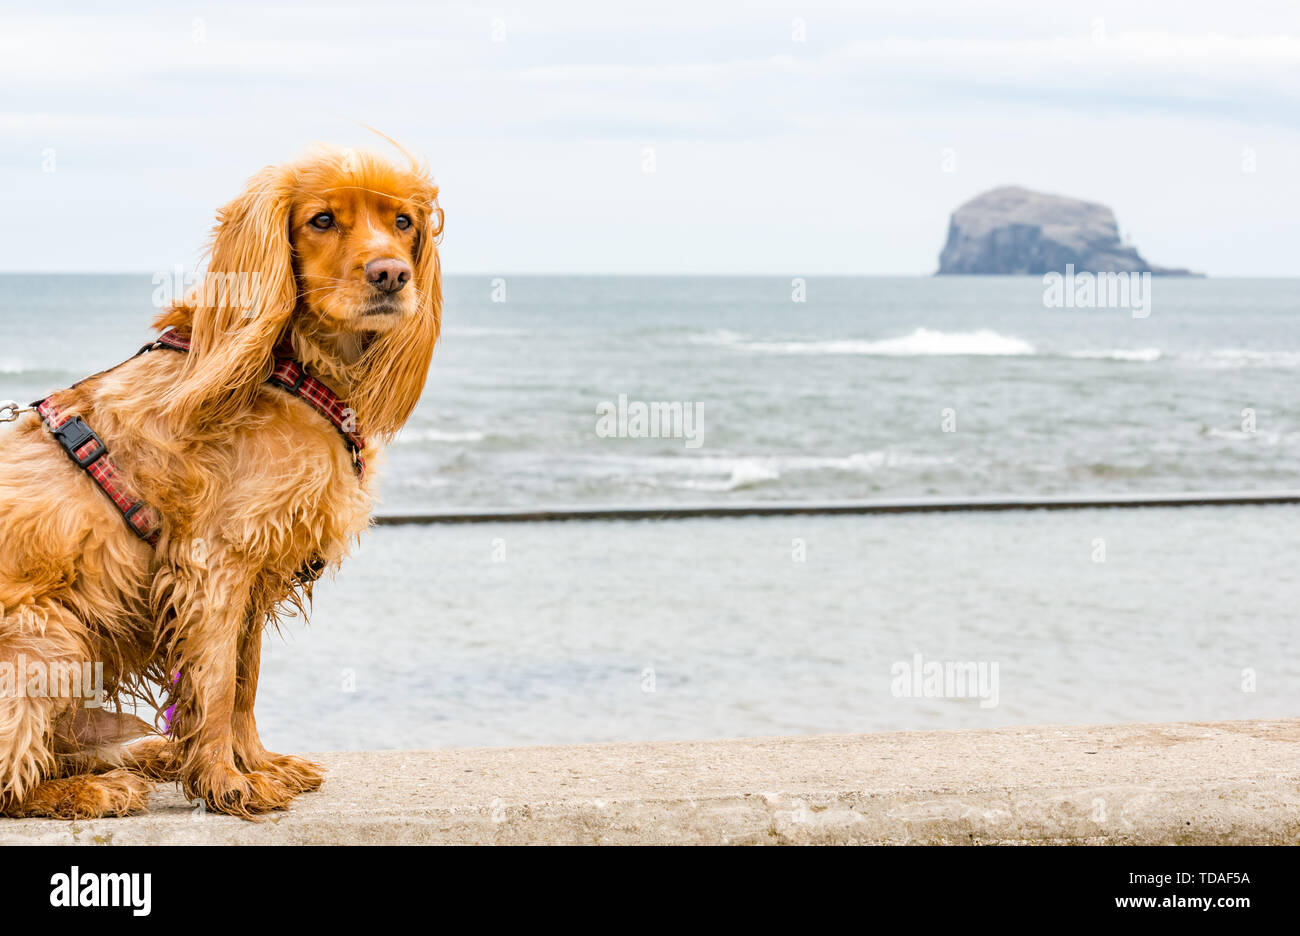 North Berwick, East Lothian, Scotland, United Kingdom, 14th June 2019. UK Weather: After East Lothian suffered heavy rain the last few days, the weather has brightened. Hamish, a spaniel enjoying the outdoors at Milsey Bay with the Bass Rock gannet colony on the horizon. Credit: Sally Anderson - Stock Image